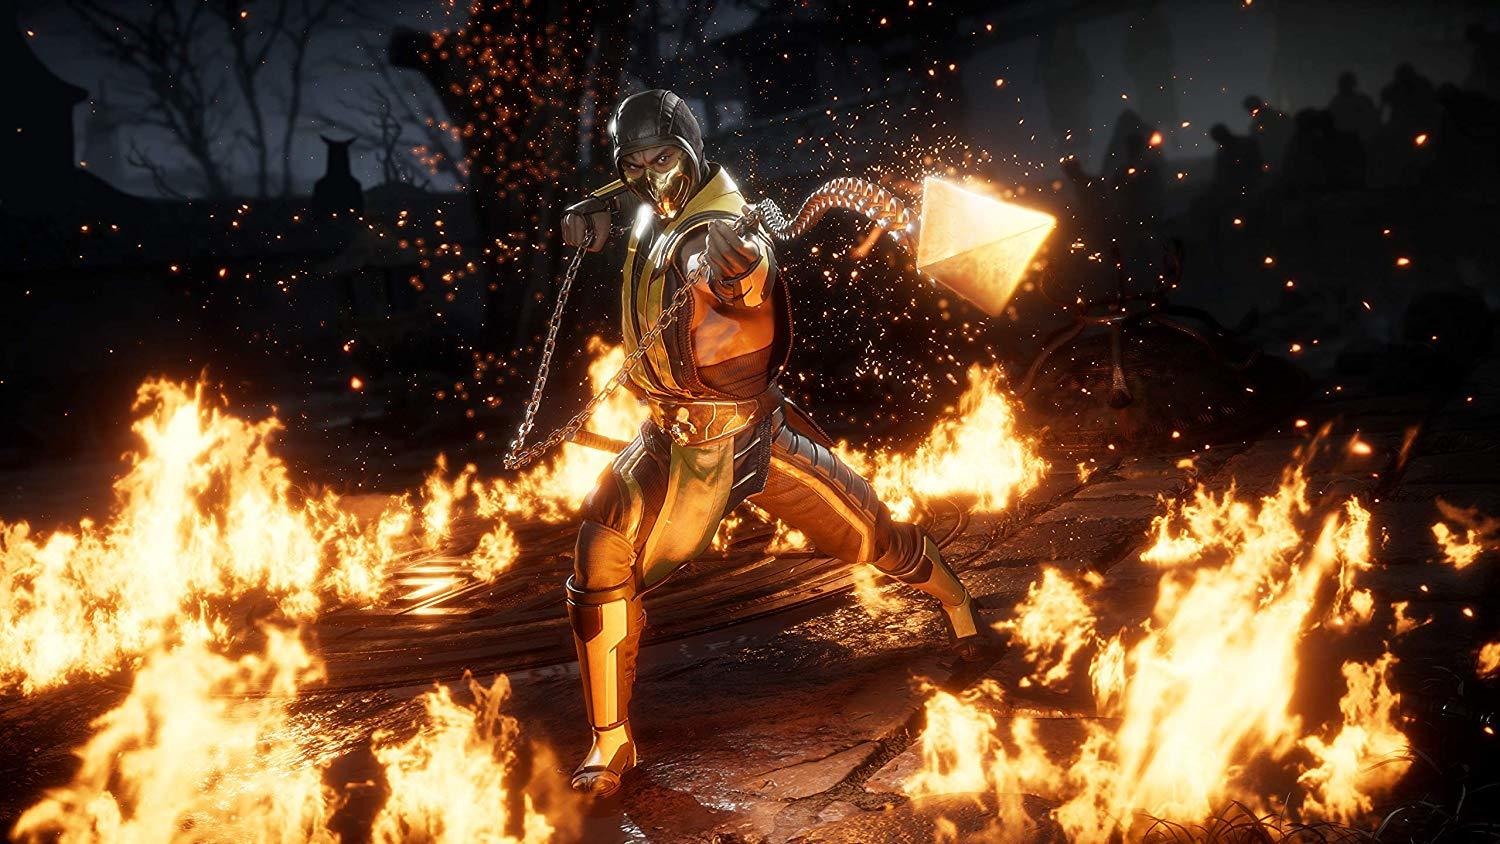 Mortal Kombat 11 Closed Beta Dates and Times Revealed